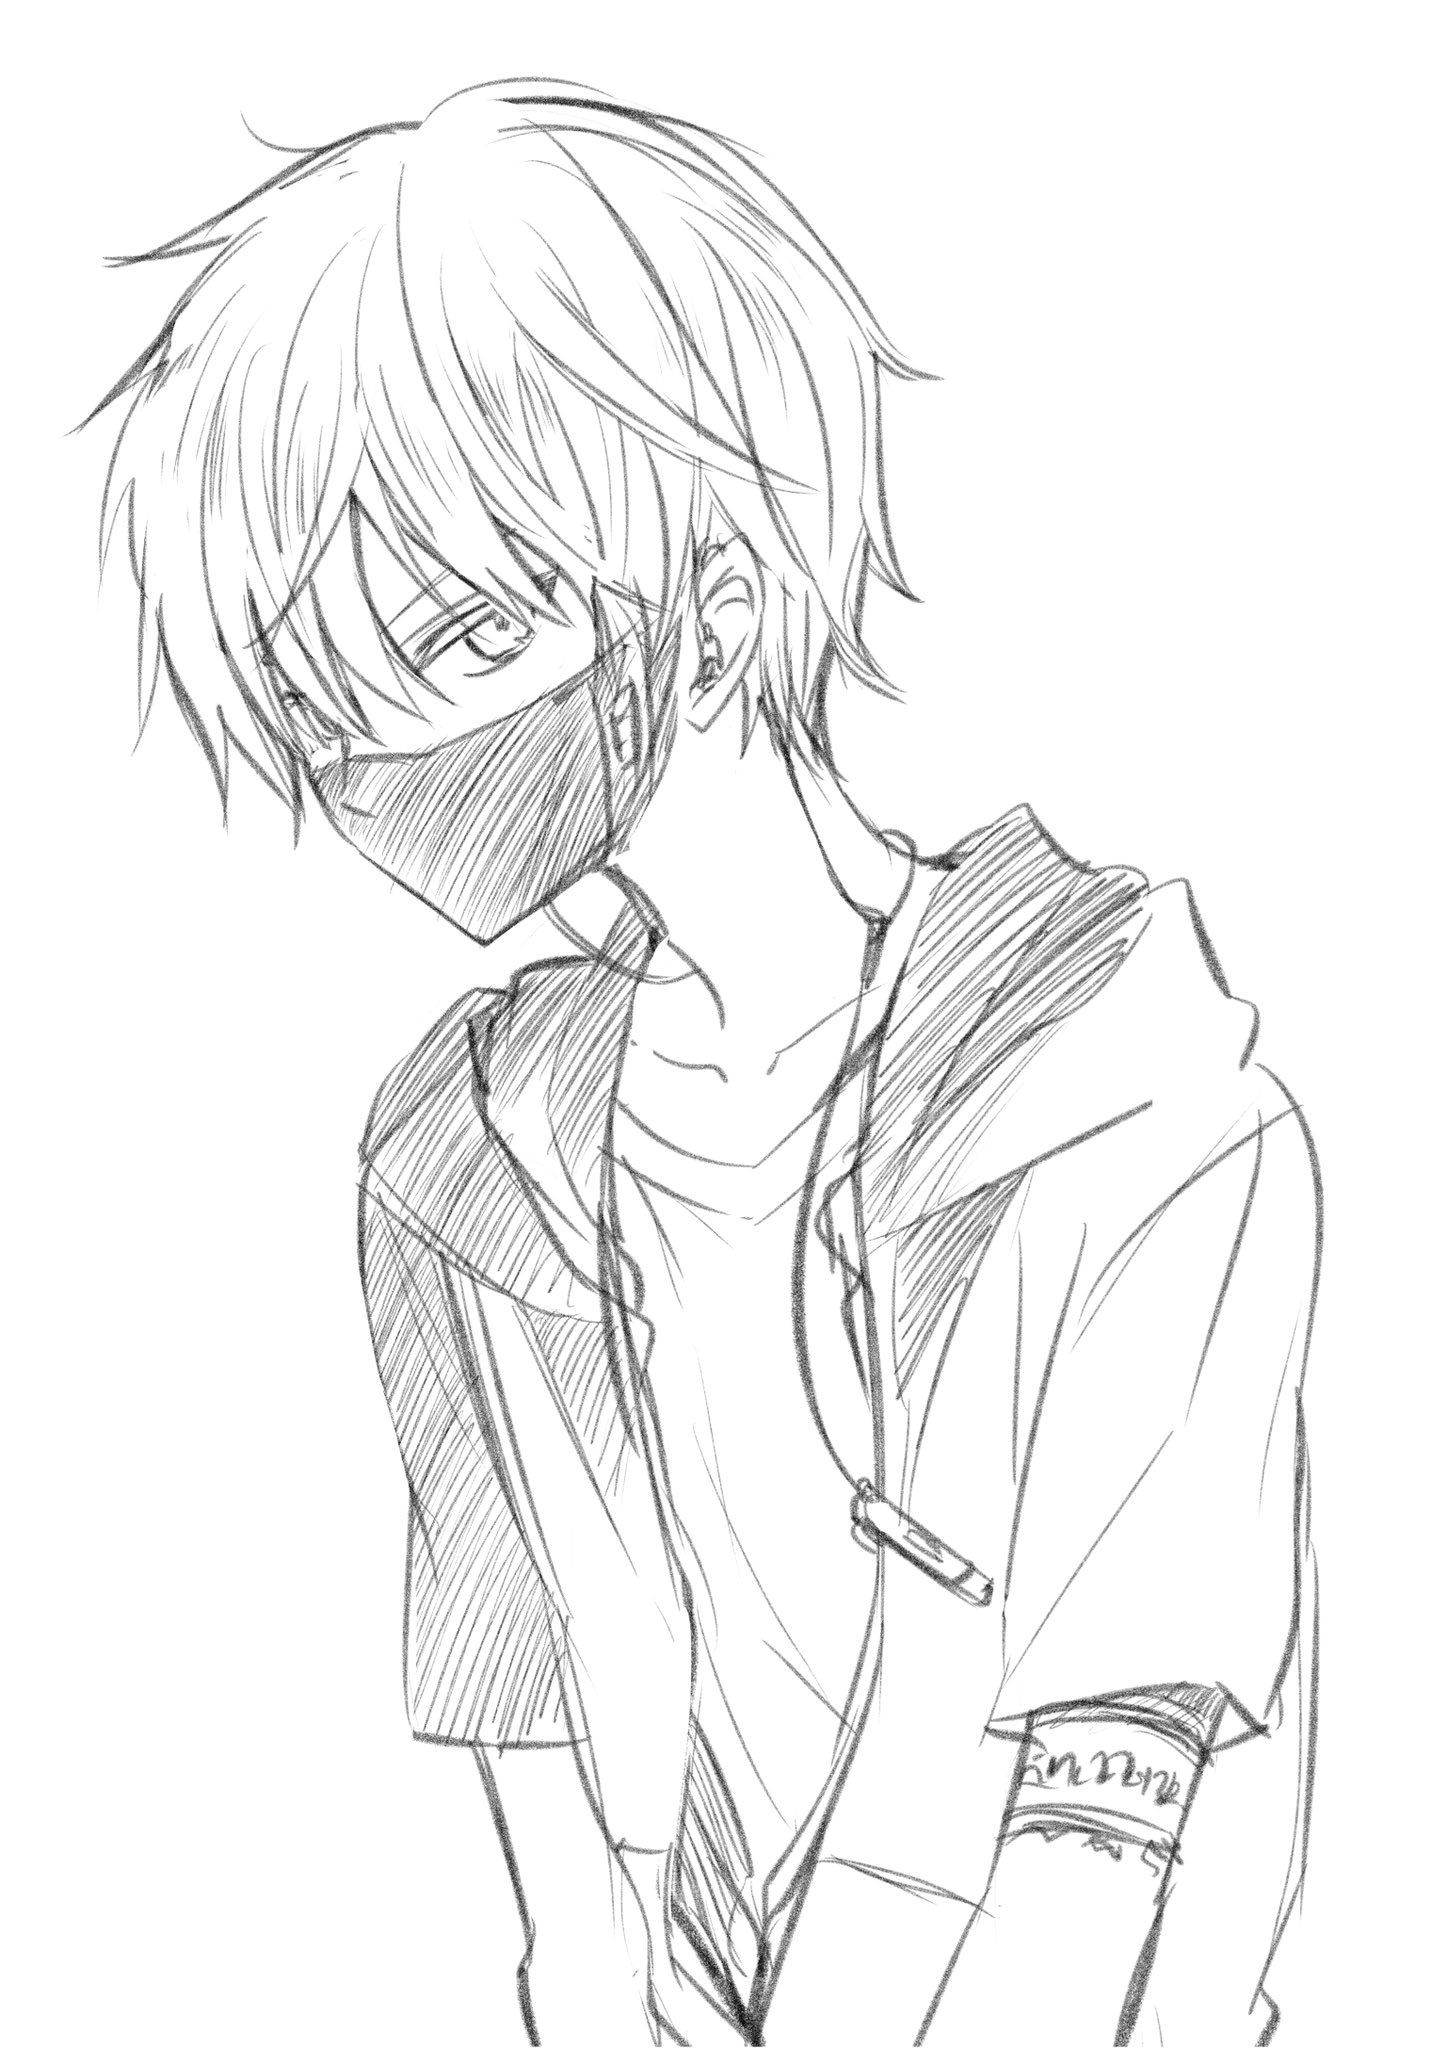 Pin By Emonightmare On Art That Inspired Me Anime Drawings Boy Anime Sketch Anime Drawings